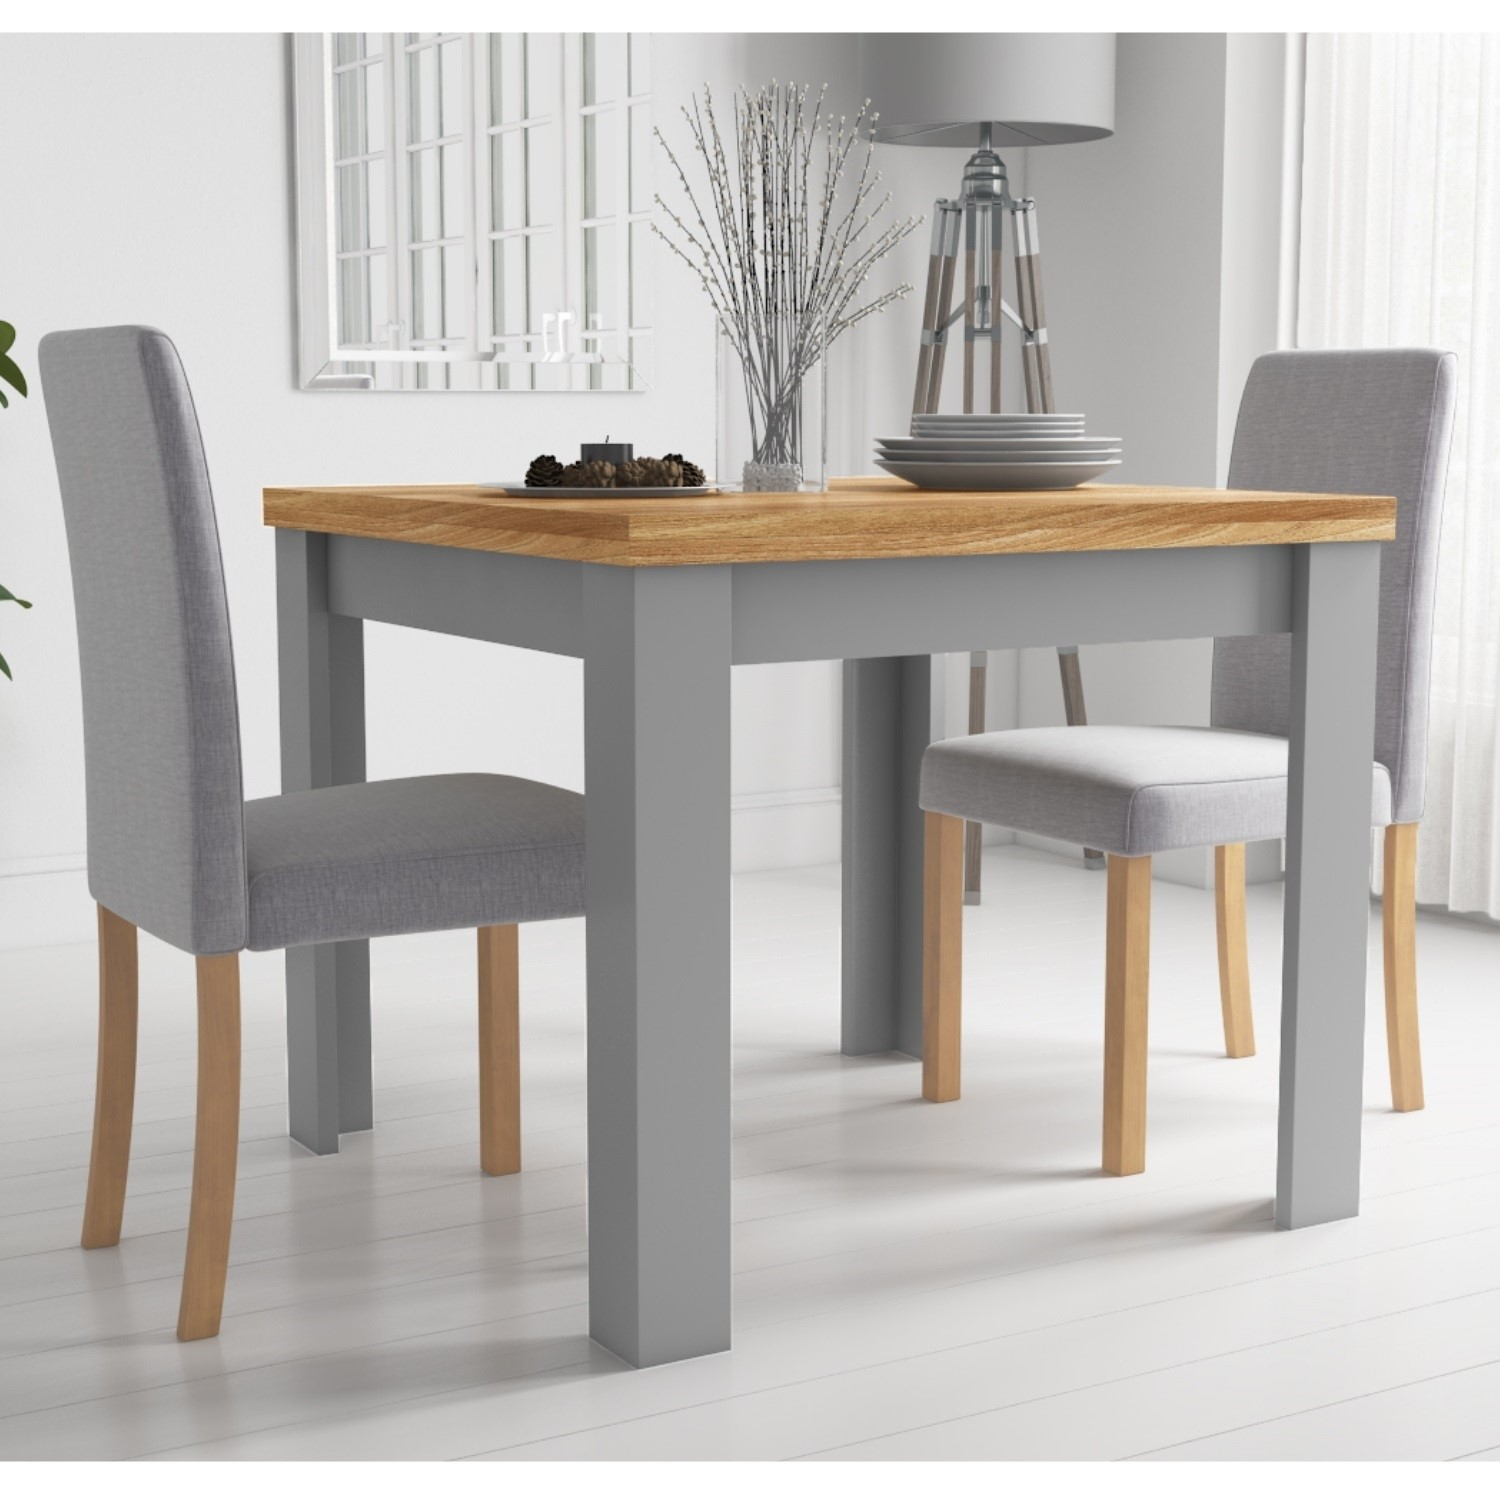 Remarkable New Town Extendable Grey Natural Dining Set With 2 Chairs In Grey Fabric Andrewgaddart Wooden Chair Designs For Living Room Andrewgaddartcom